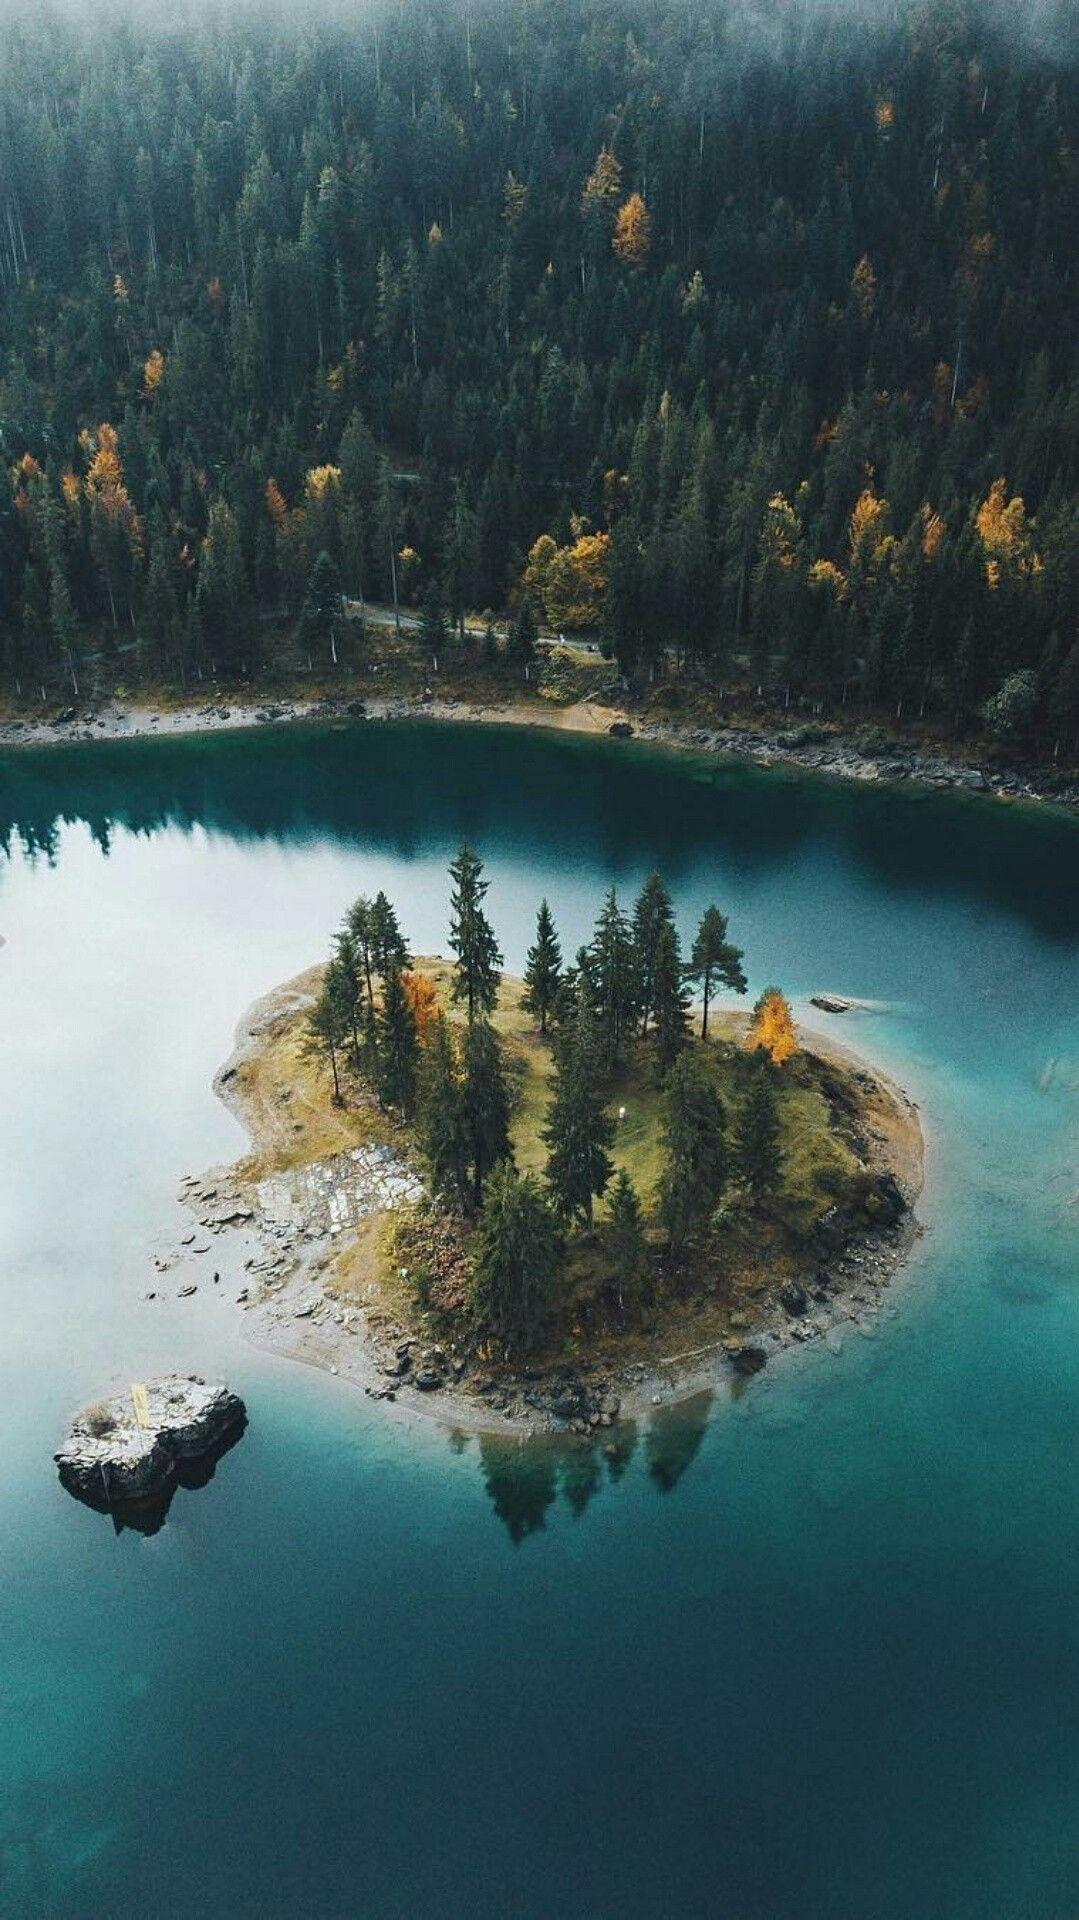 Mini Island in Lake Nature Forest iPhone Wallpaper